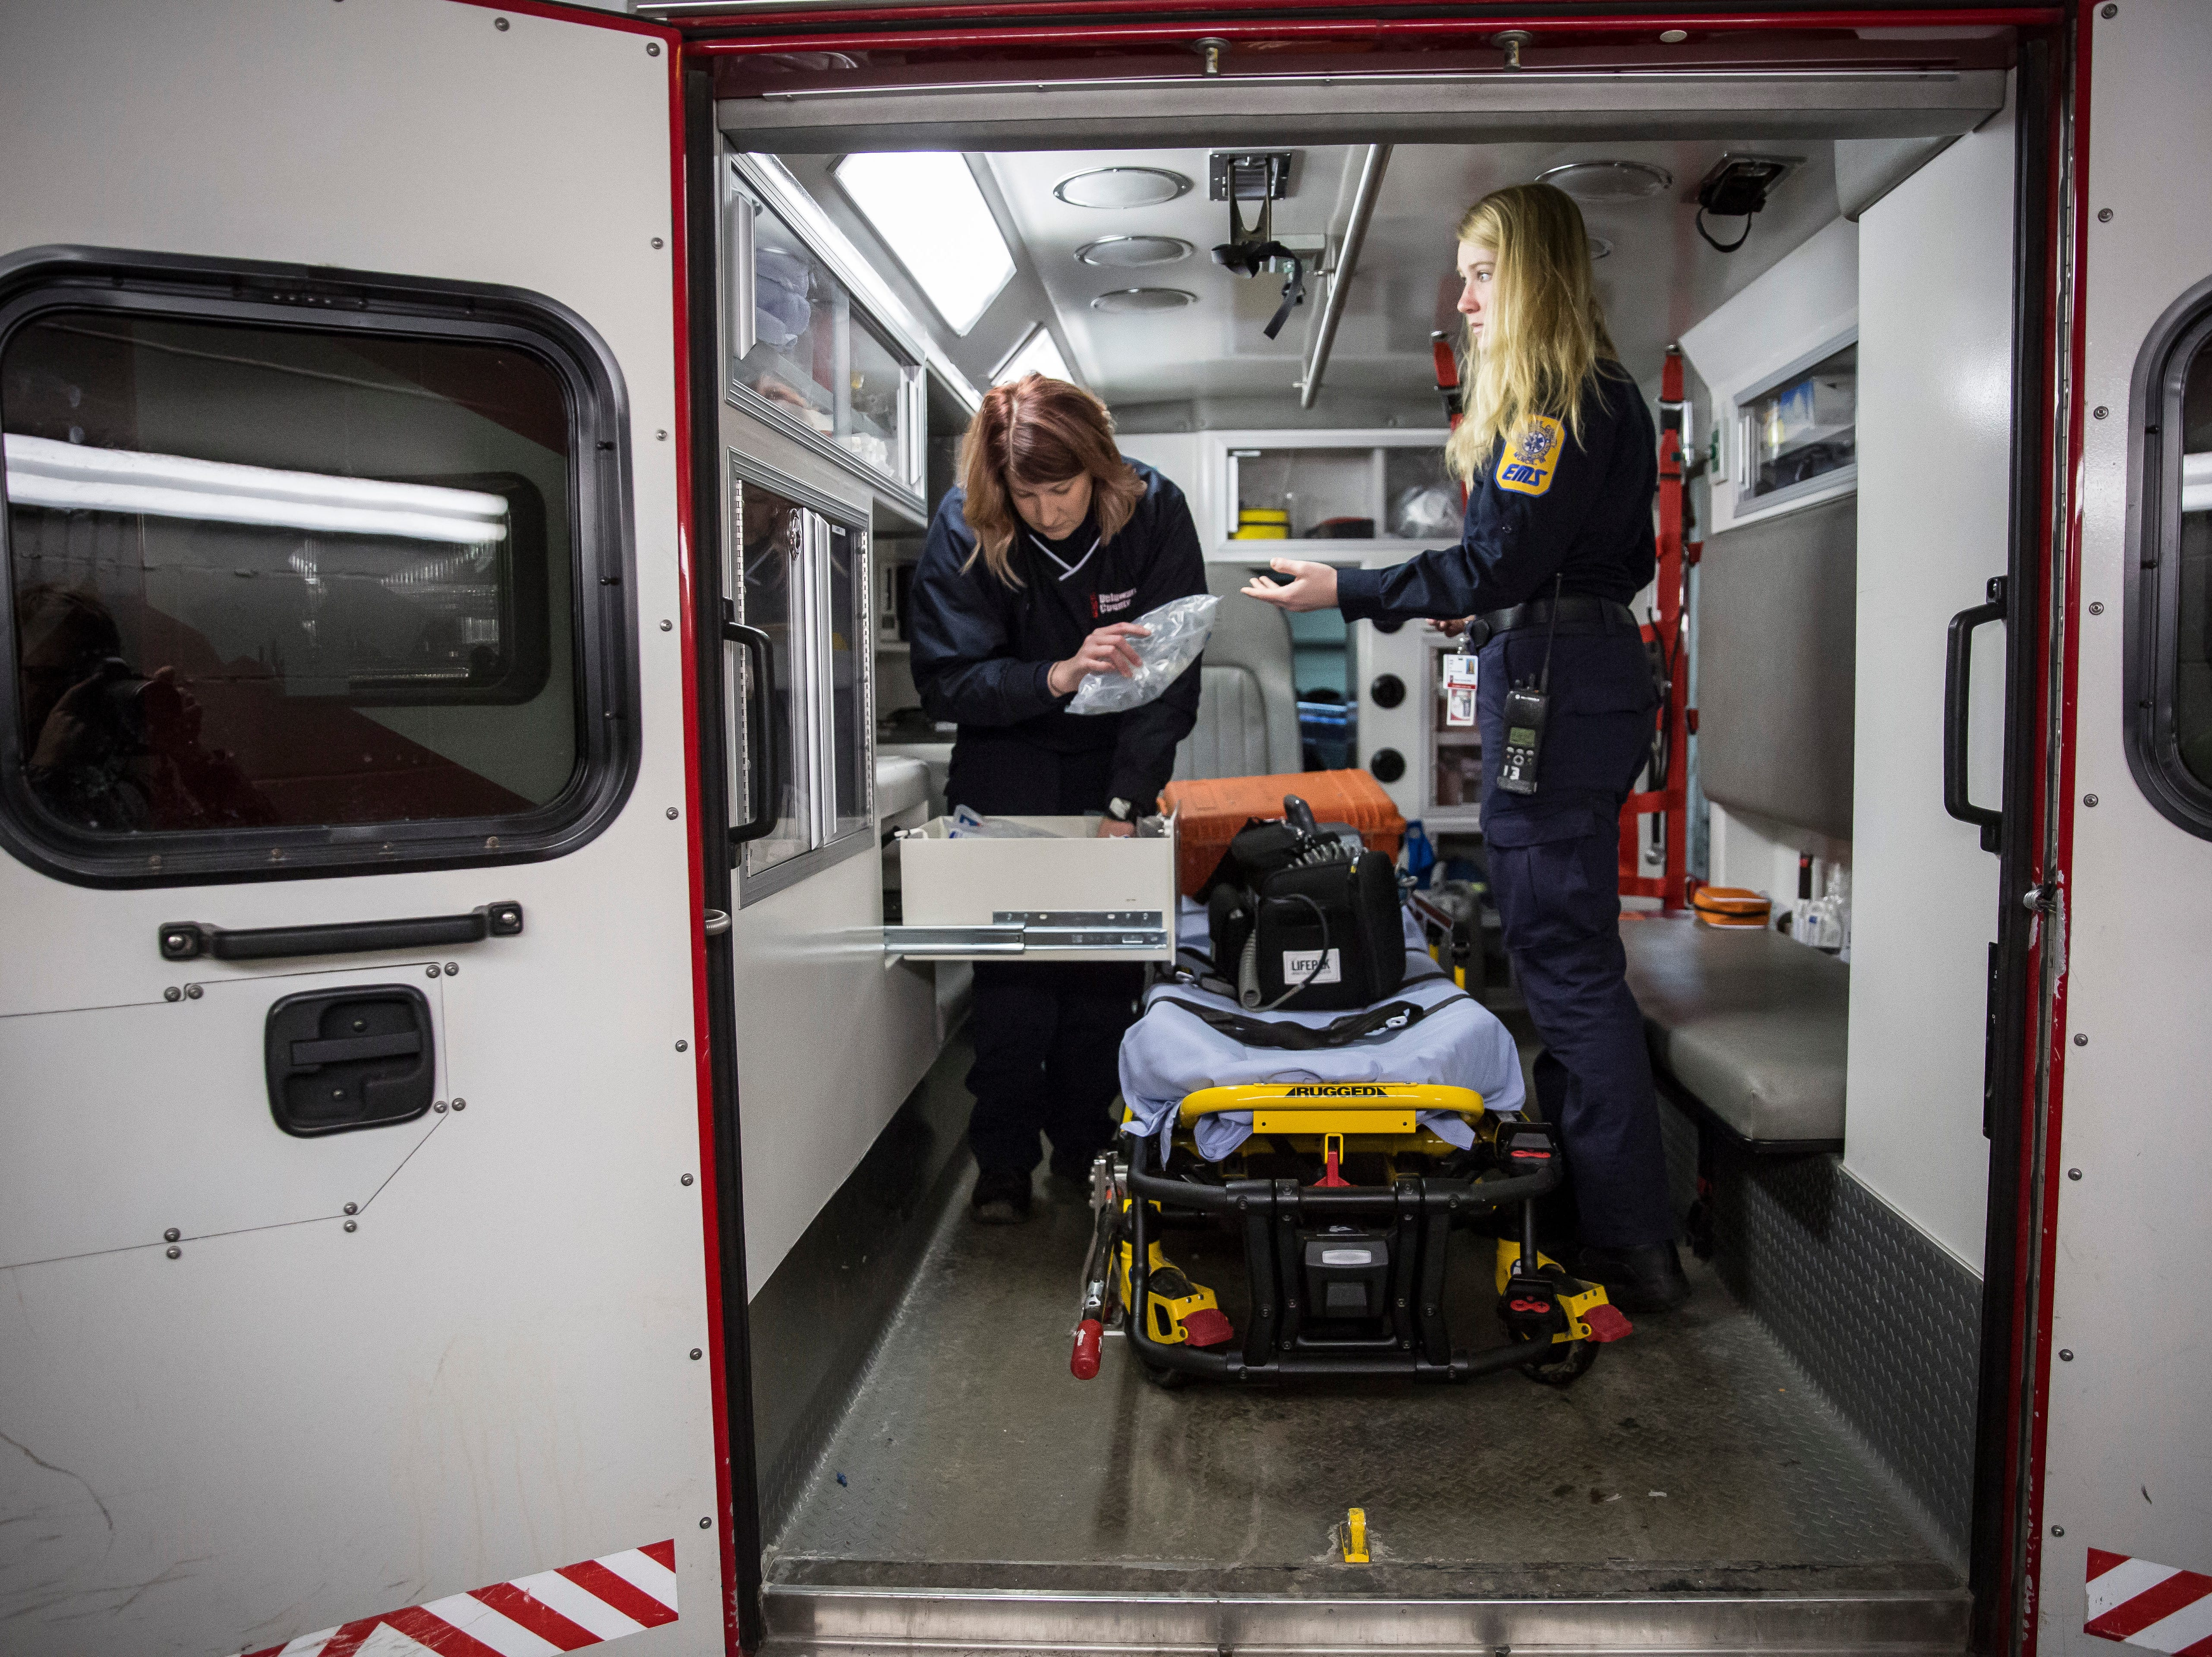 Blair Scott, paramedic with Delaware County EMS, and EMT April Hart work on restocking and readying their ambulance after a run in the morning on Friday, Feb. 8. The City of Muncie is looking into forming their own ambulance service by buying 3 ambulances for the fire department, though officials disagree on the impact this would have on DCEMS.